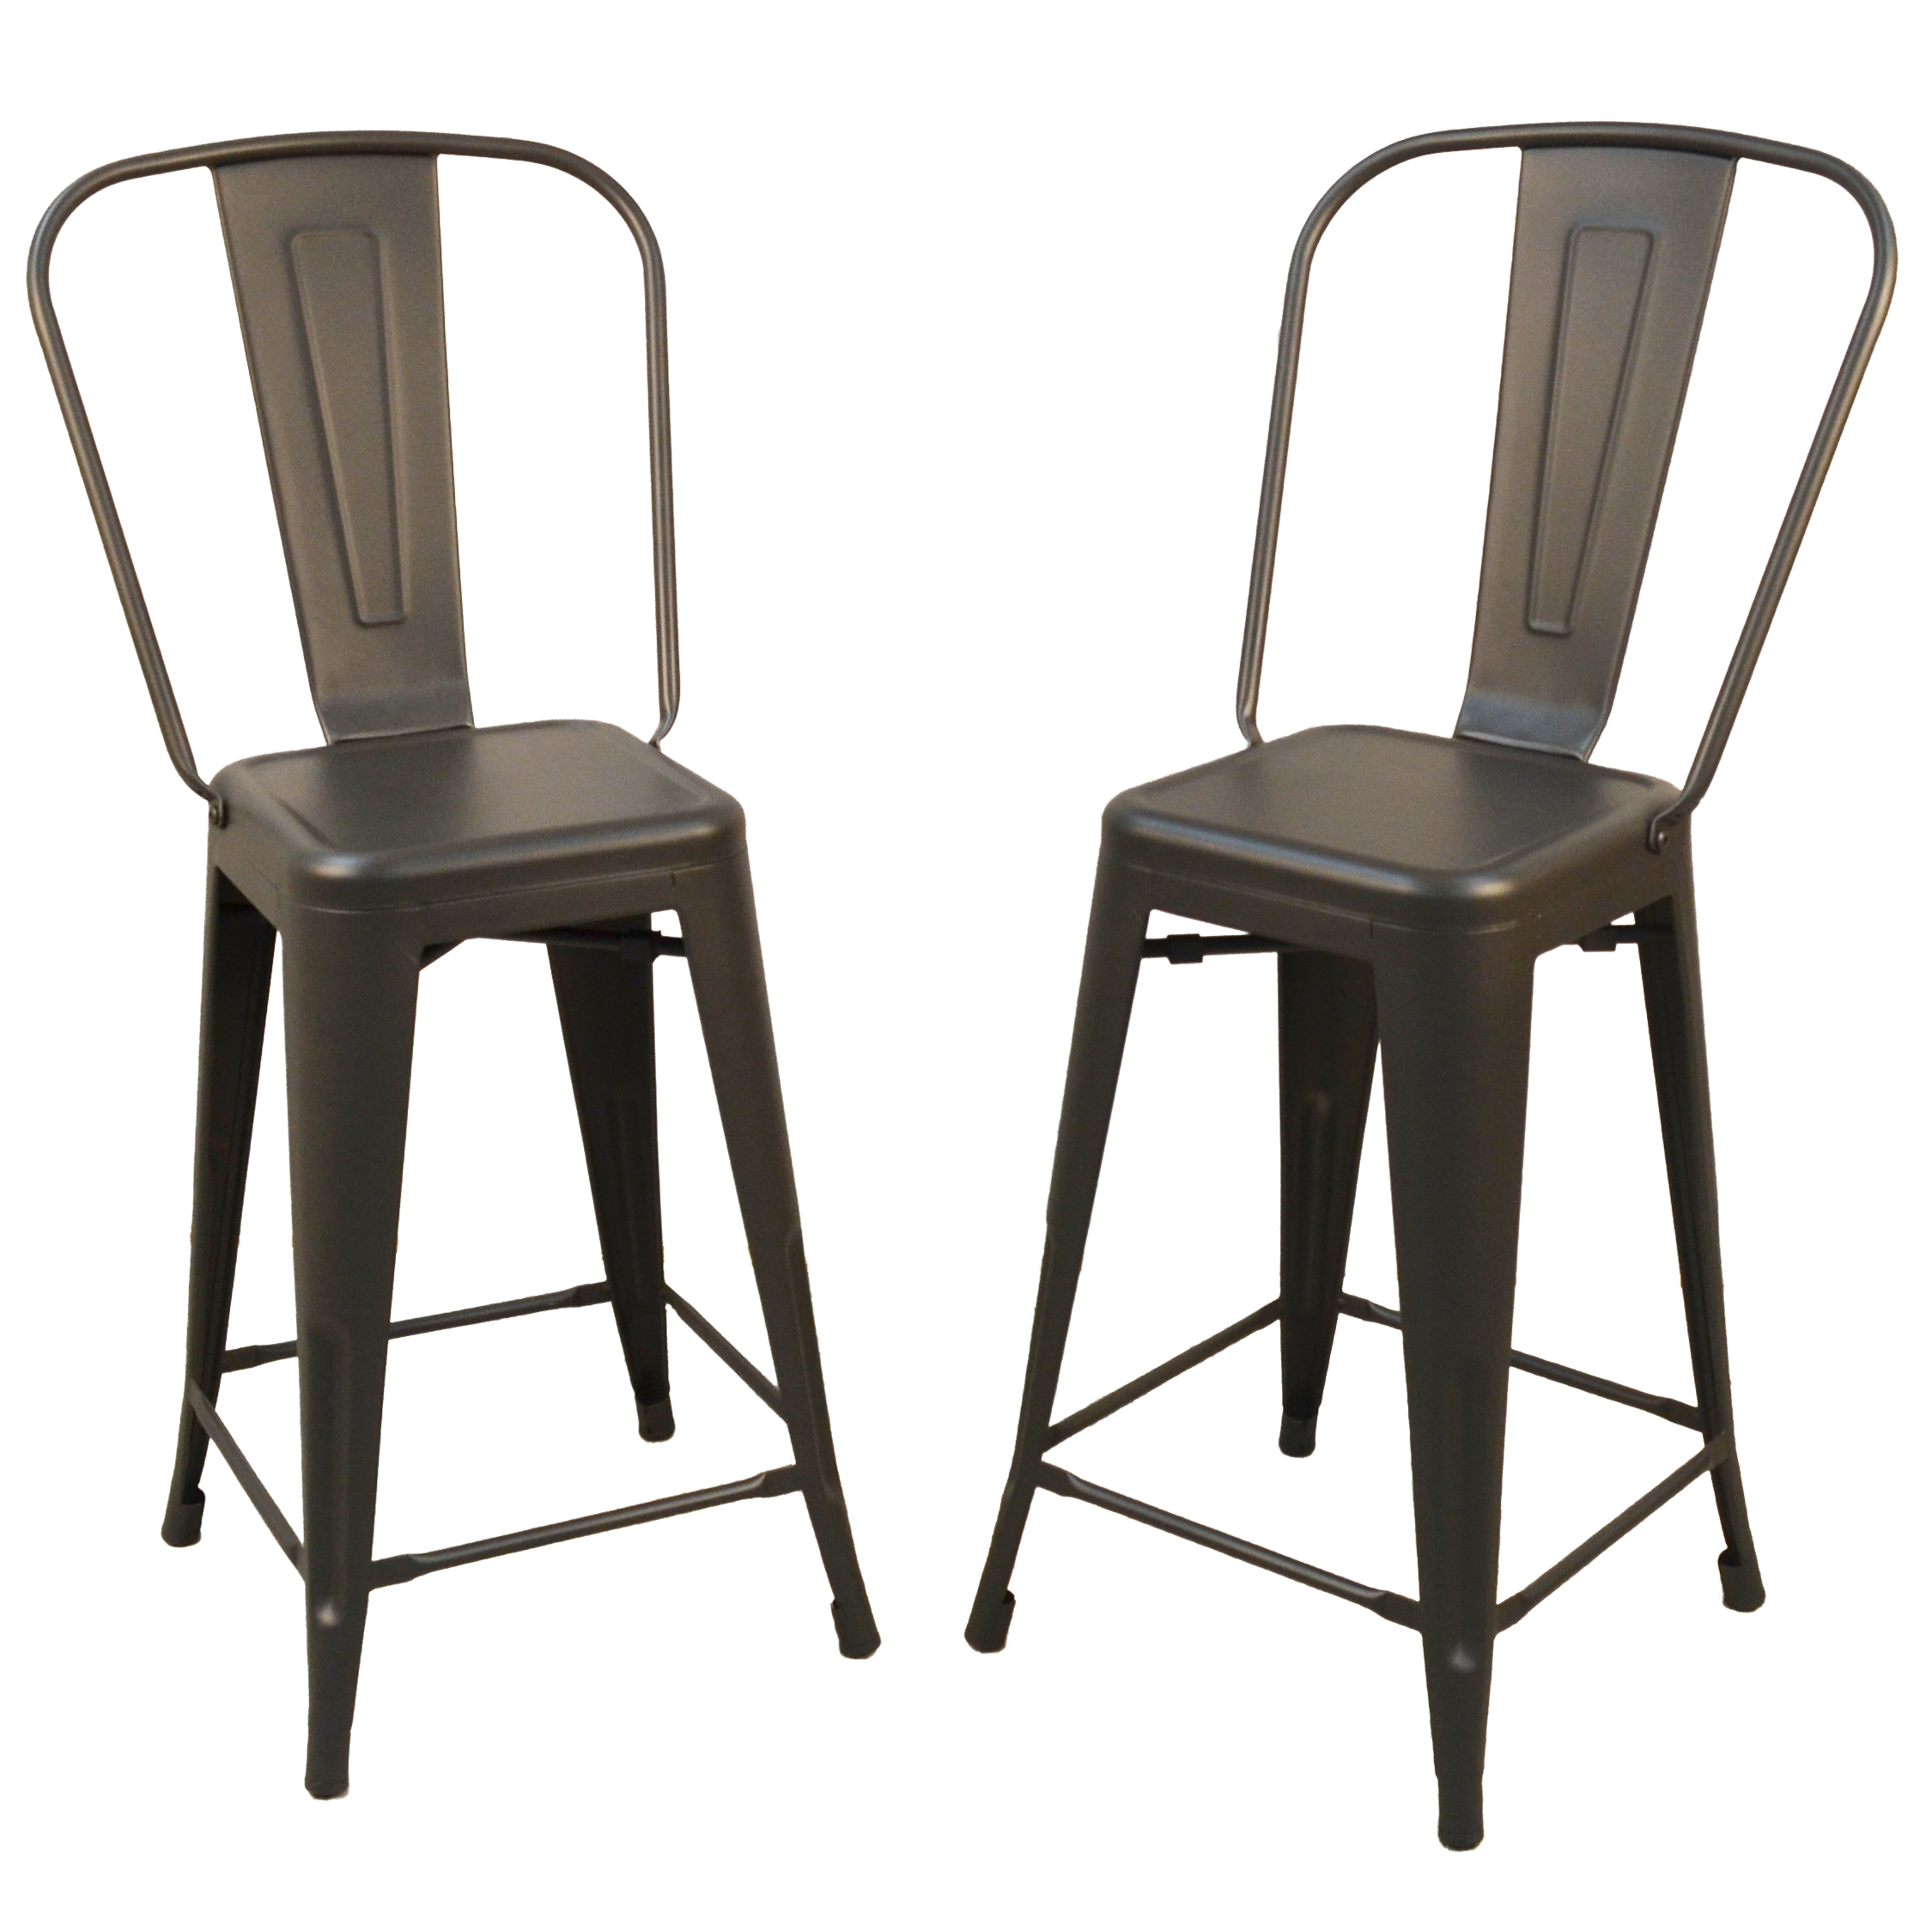 "Adeline 24"" Counter Stool Set of 2, Rustic Pewter"